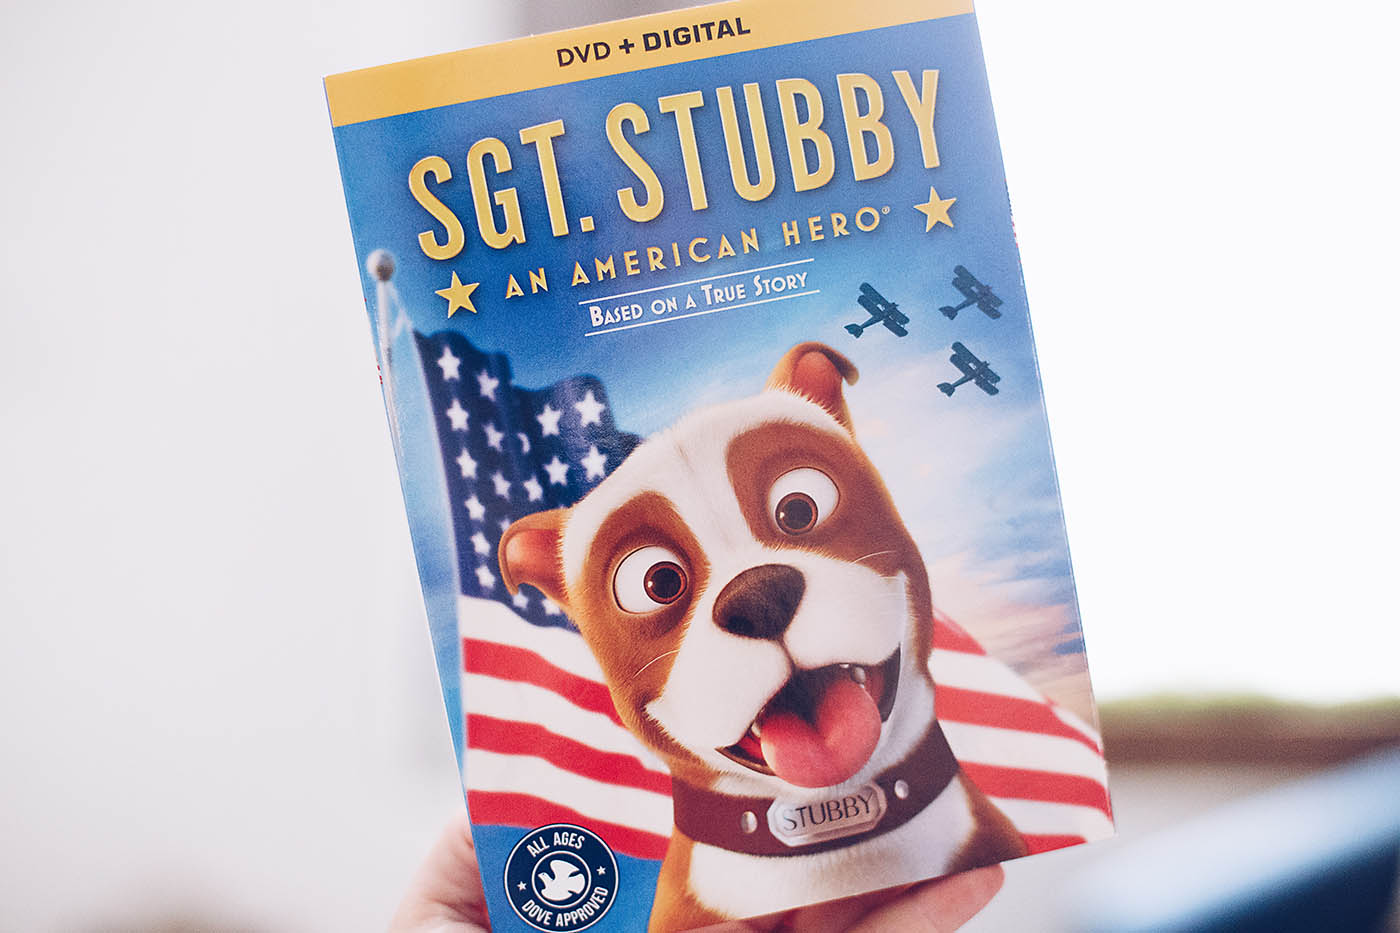 Sgt. Stubby on Blu-ray + printable activity pack